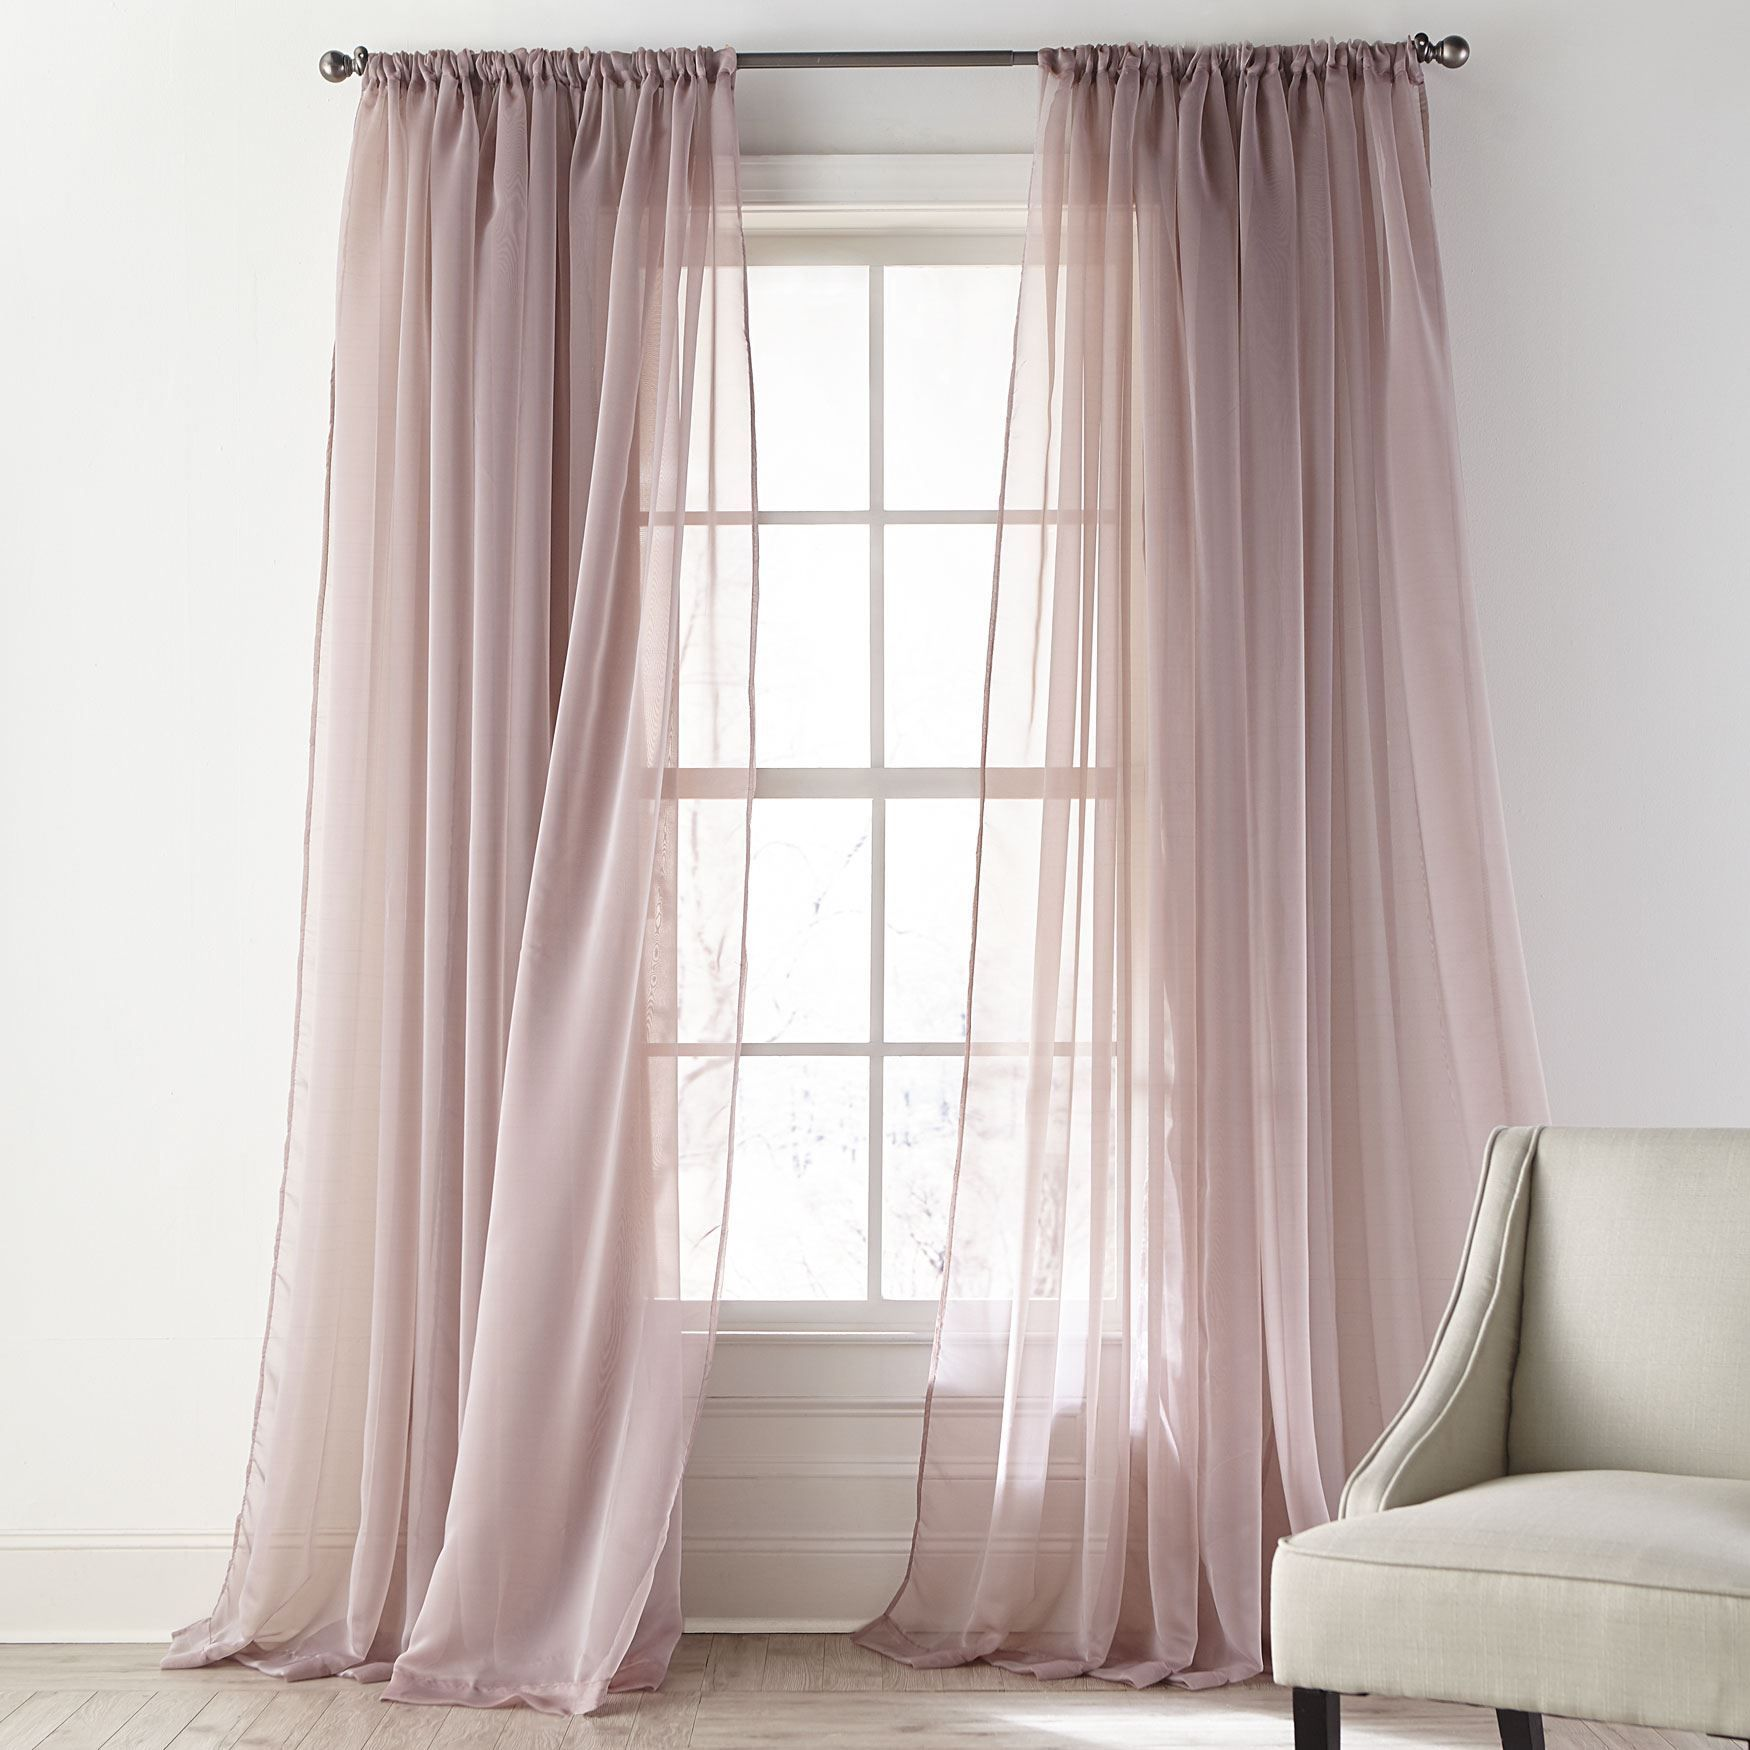 Ophelia Shimmer Curtain Mauve In 2020 Sheers Curtains Living Room Sheer Curtains Bedroom Home Curtains #vintage #living #room #curtains